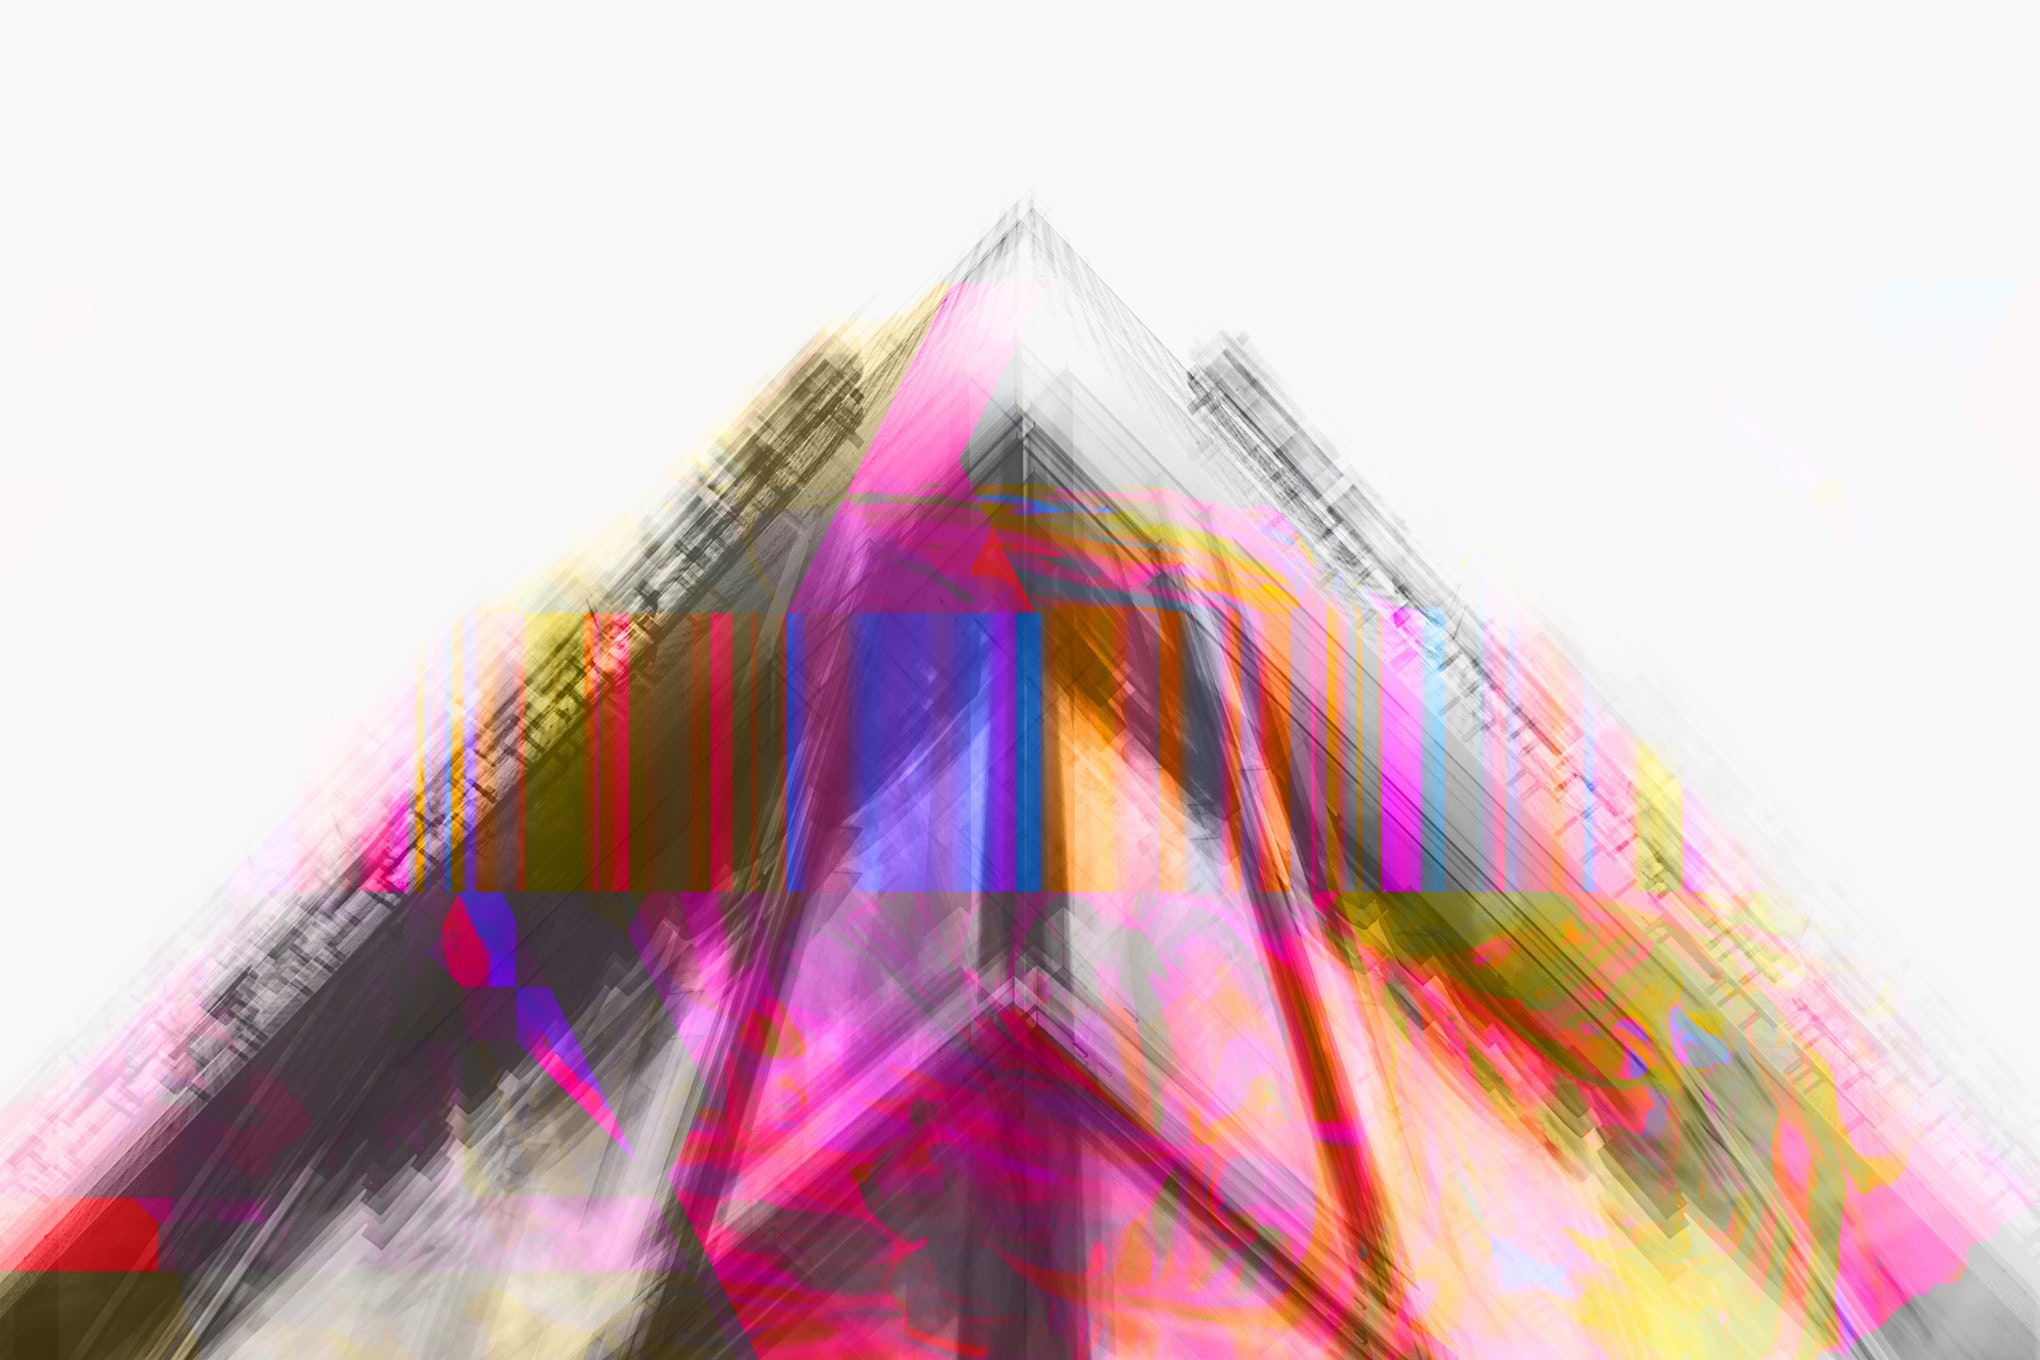 Vibrant art created from one of my own architecture photos